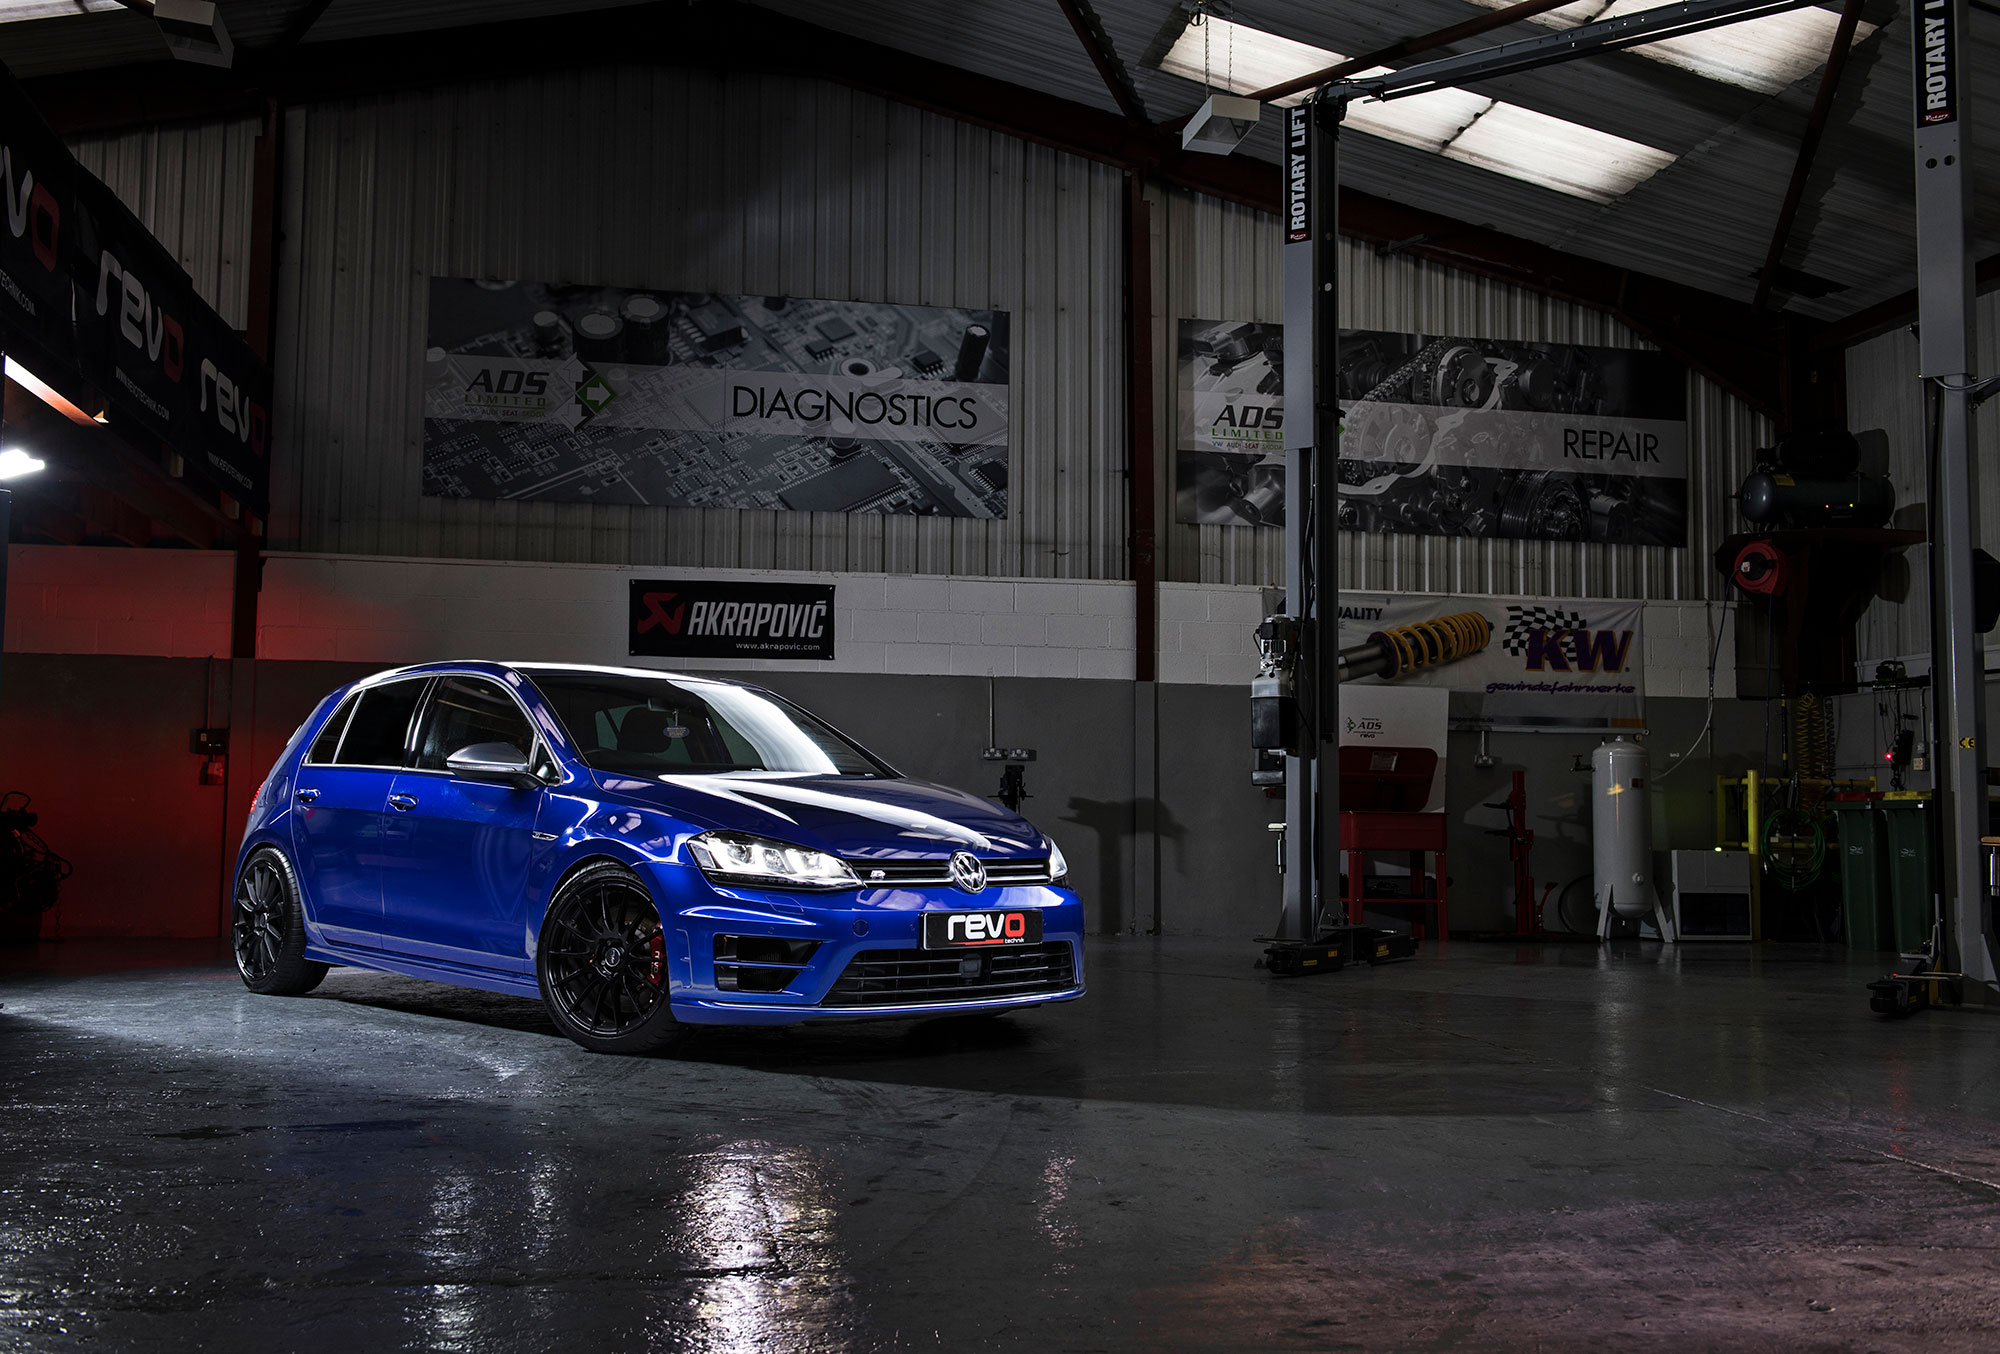 ADS Automotive MK7 Golf R Remap & performance modifications available to 500bhp